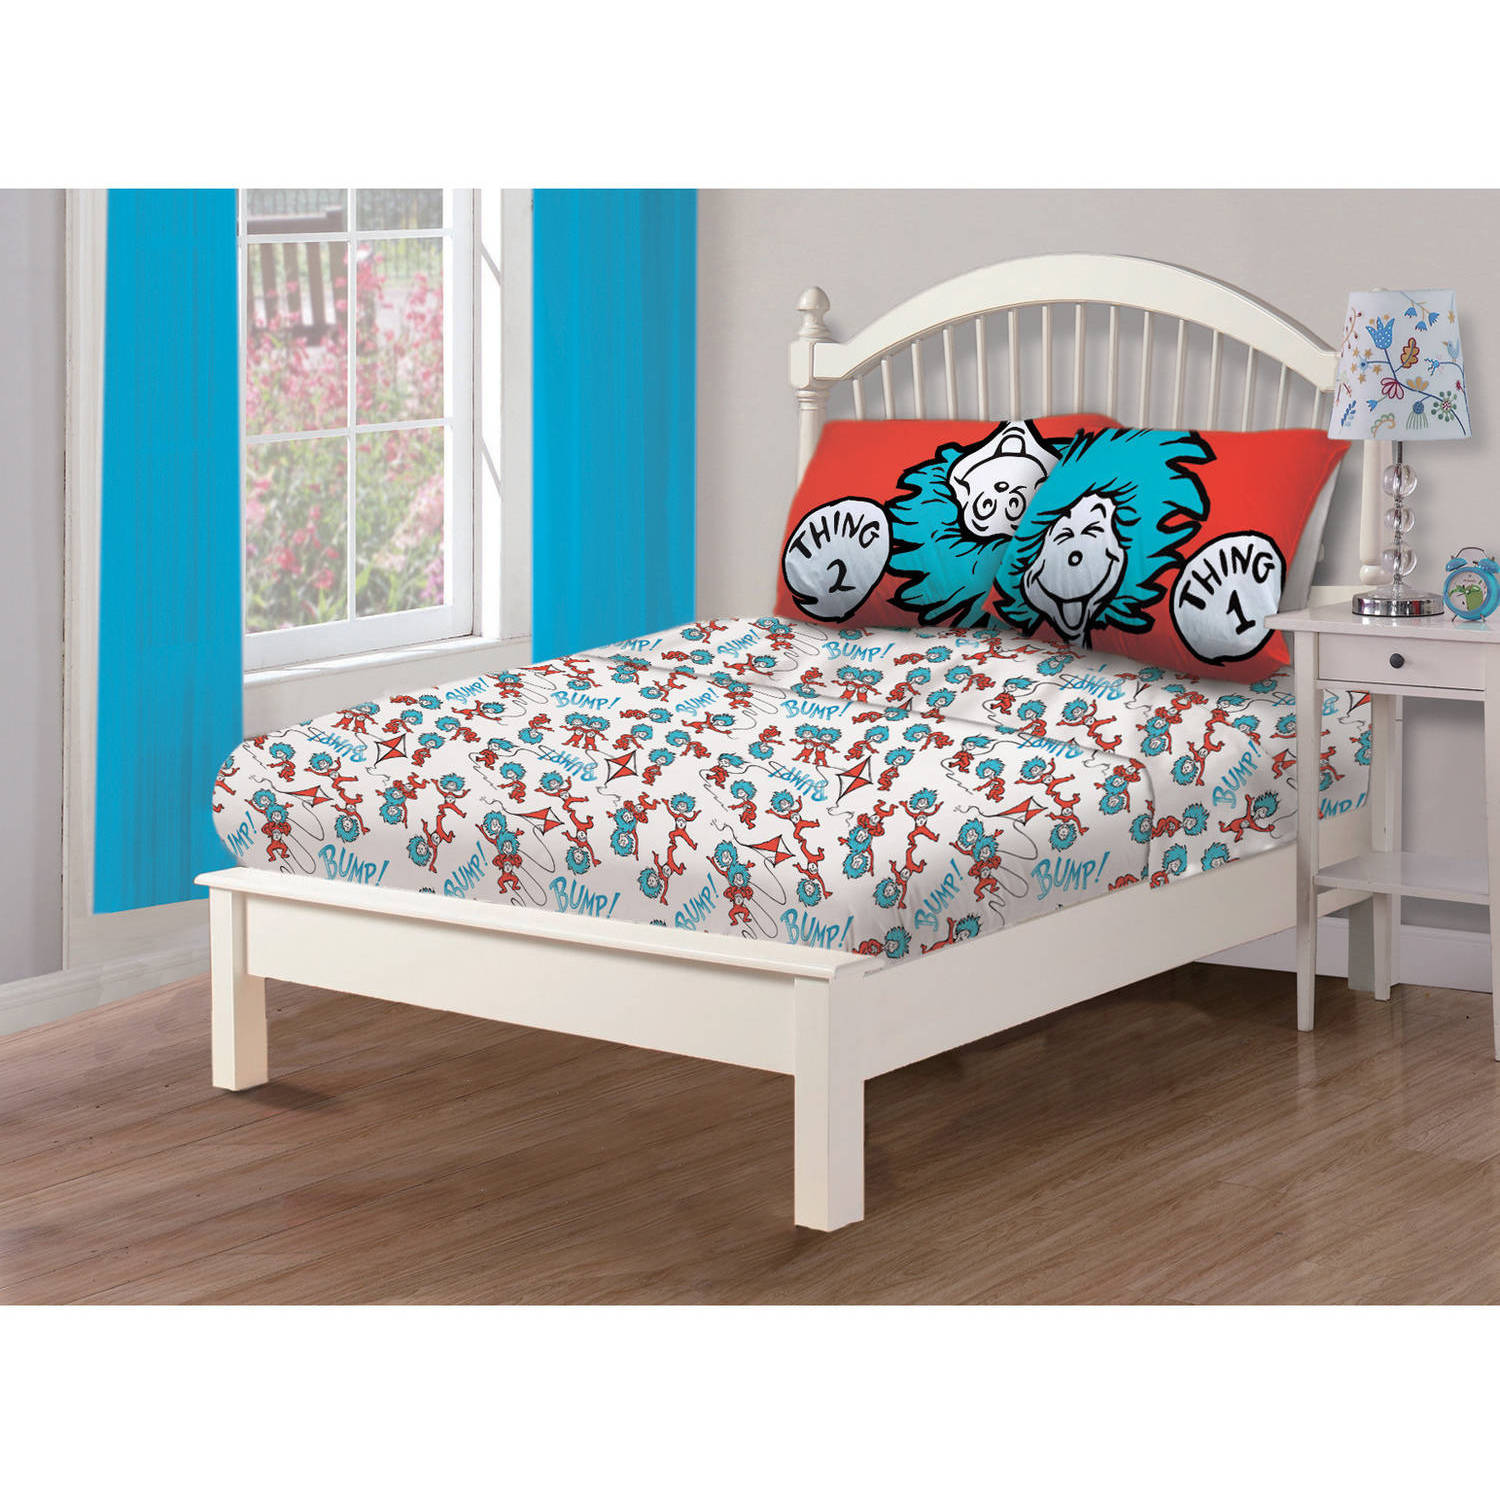 "Dr. Seuss The Cat in the Hat Bedding ""Covers Cover"" Twin Sheet Set"